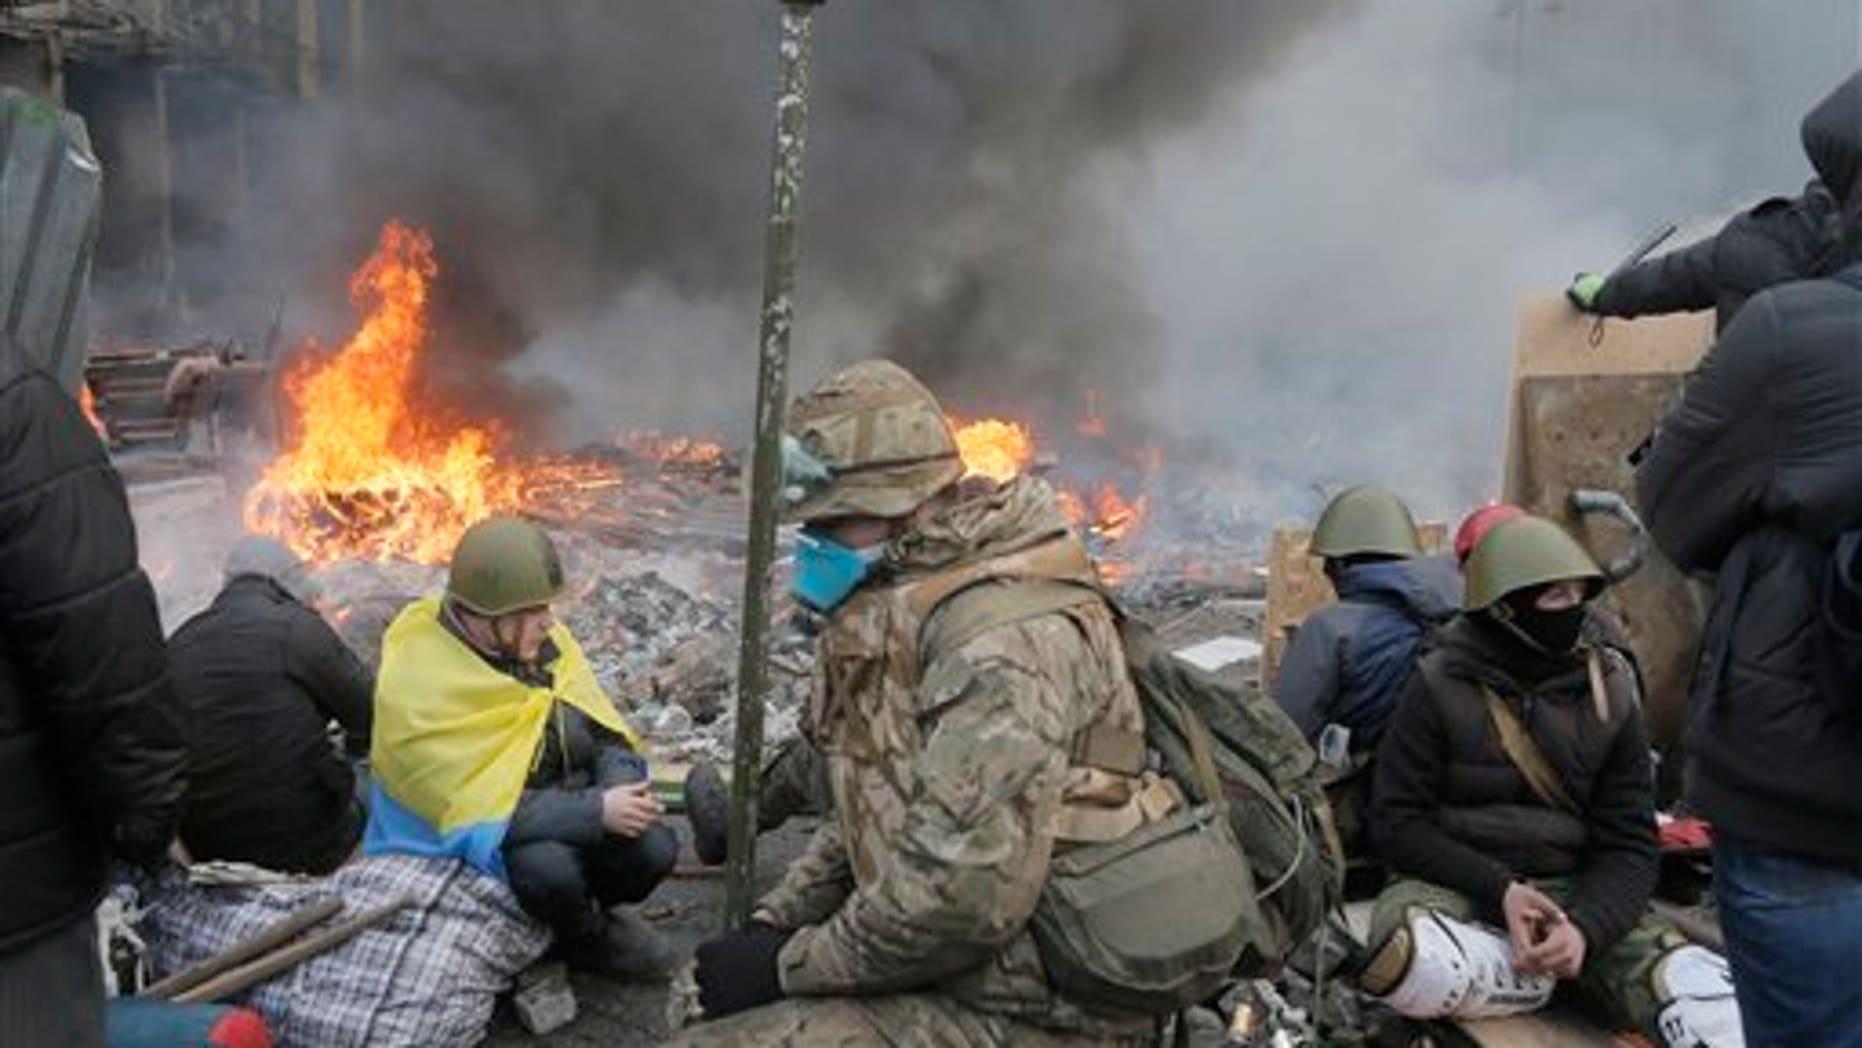 Anti-government protesters relax at the barricades during clashes with riot police in Kiev's Independence Square, the epicenter of the country's current unrest, Kiev, Ukraine, Wednesday, Feb. 19, 2014.  The deadly clashes in Ukraines capital have drawn sharp reactions from Washington, generated talk of possible European Union sanctions and led to a Kremlin statement blaming Europe and the West. A roundup of some of the international reactions. (AP Photo/Efrem Lukatsky)